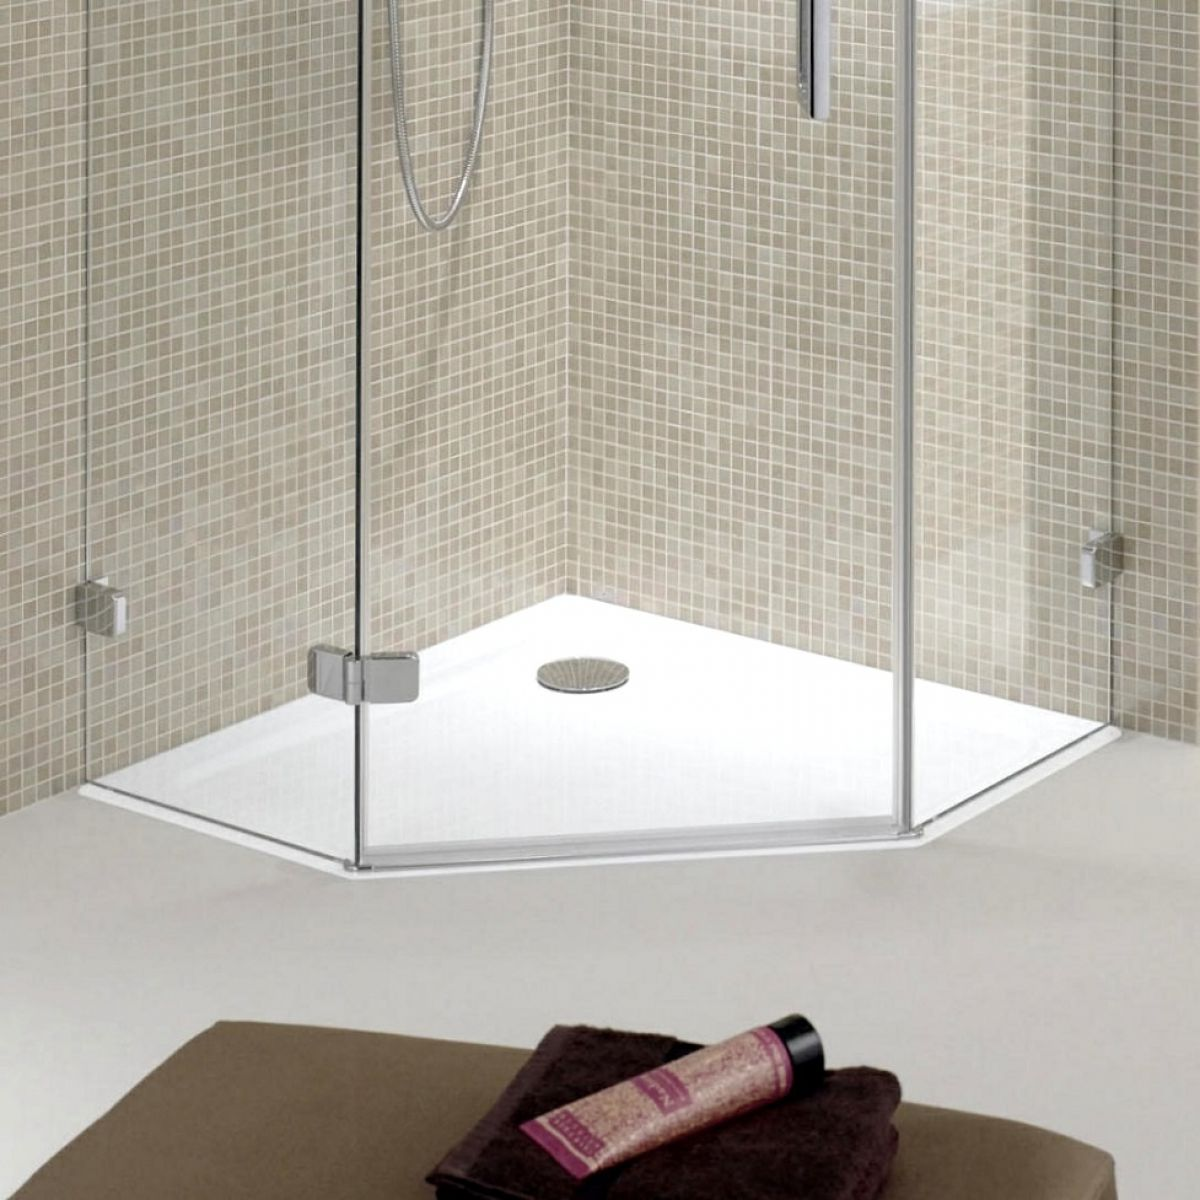 picture of a pentagonal shower tray